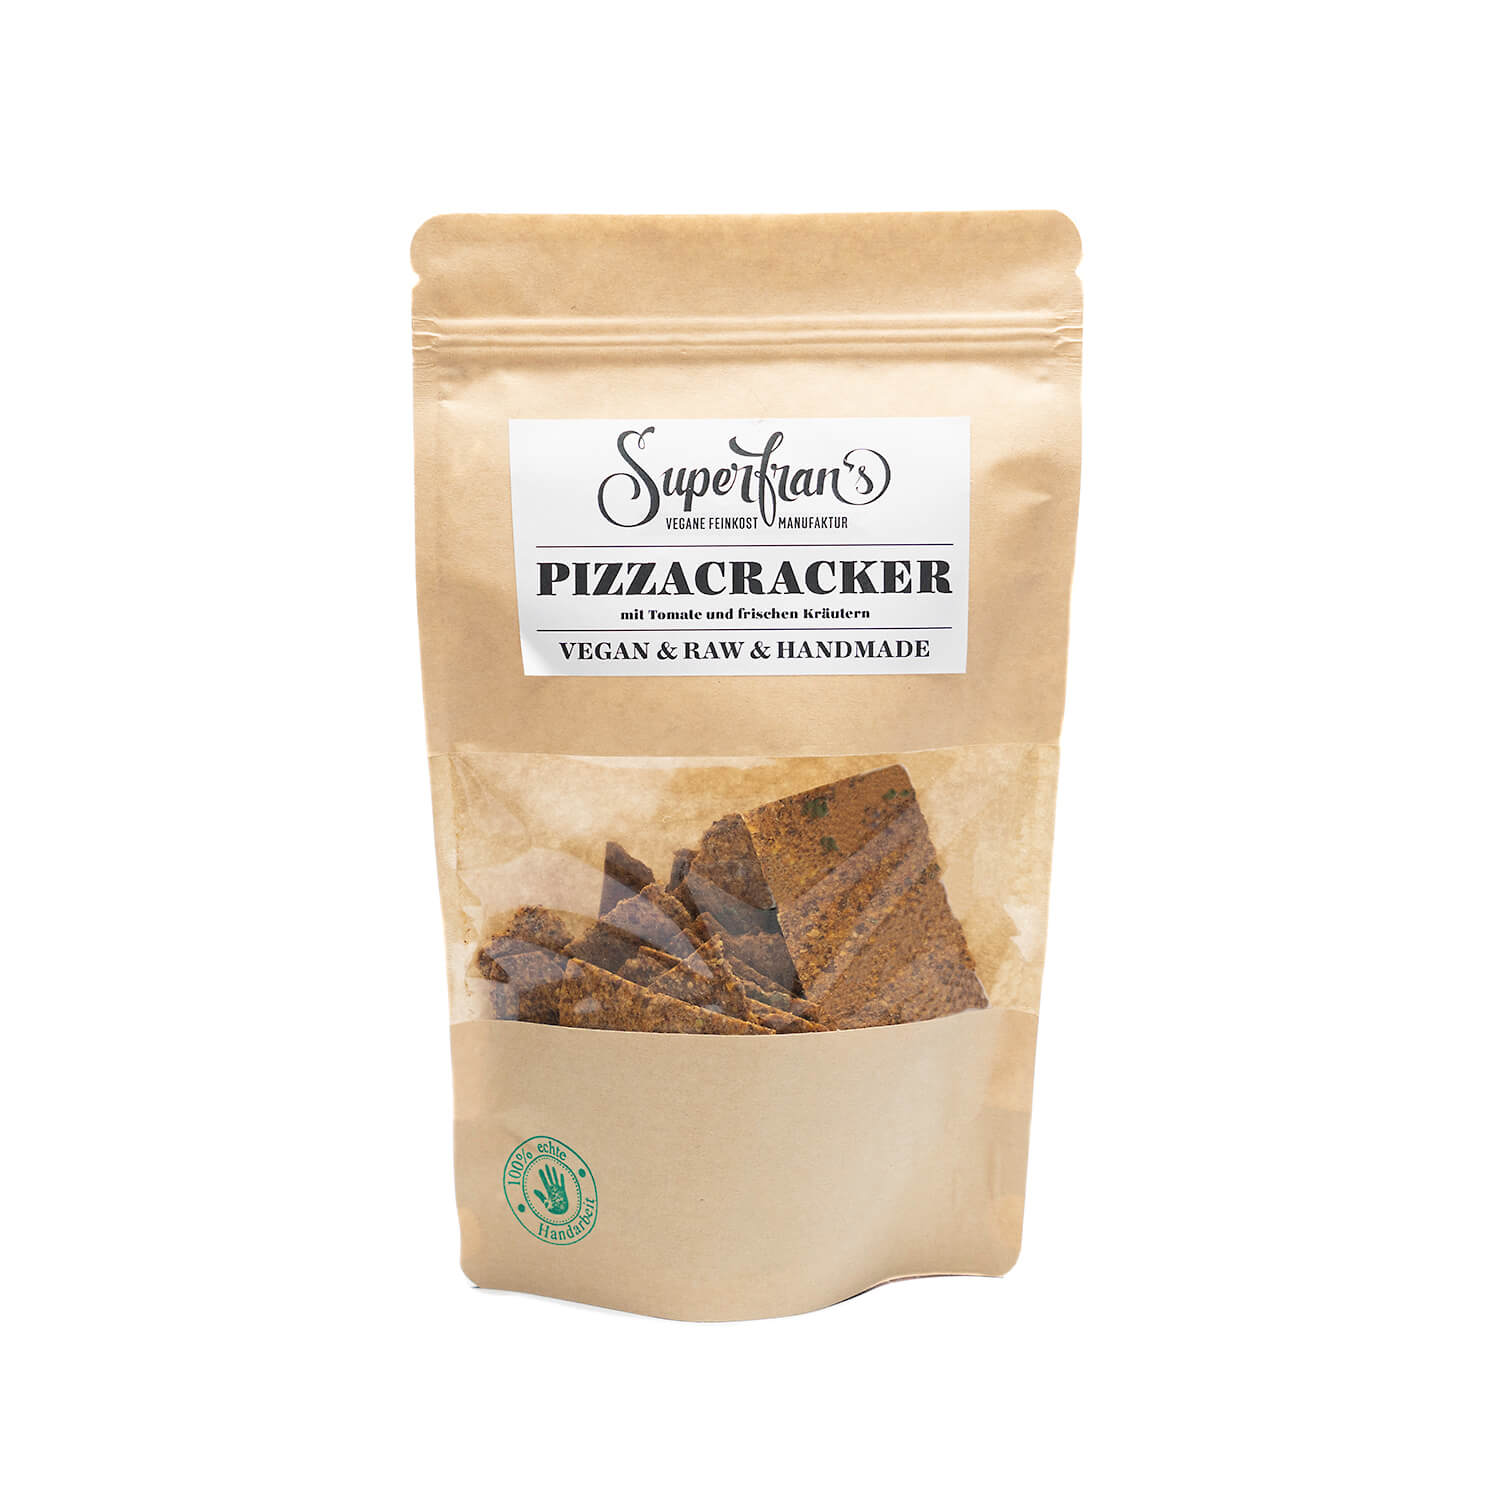 Superfran's Pizzacracker, 75 g Image